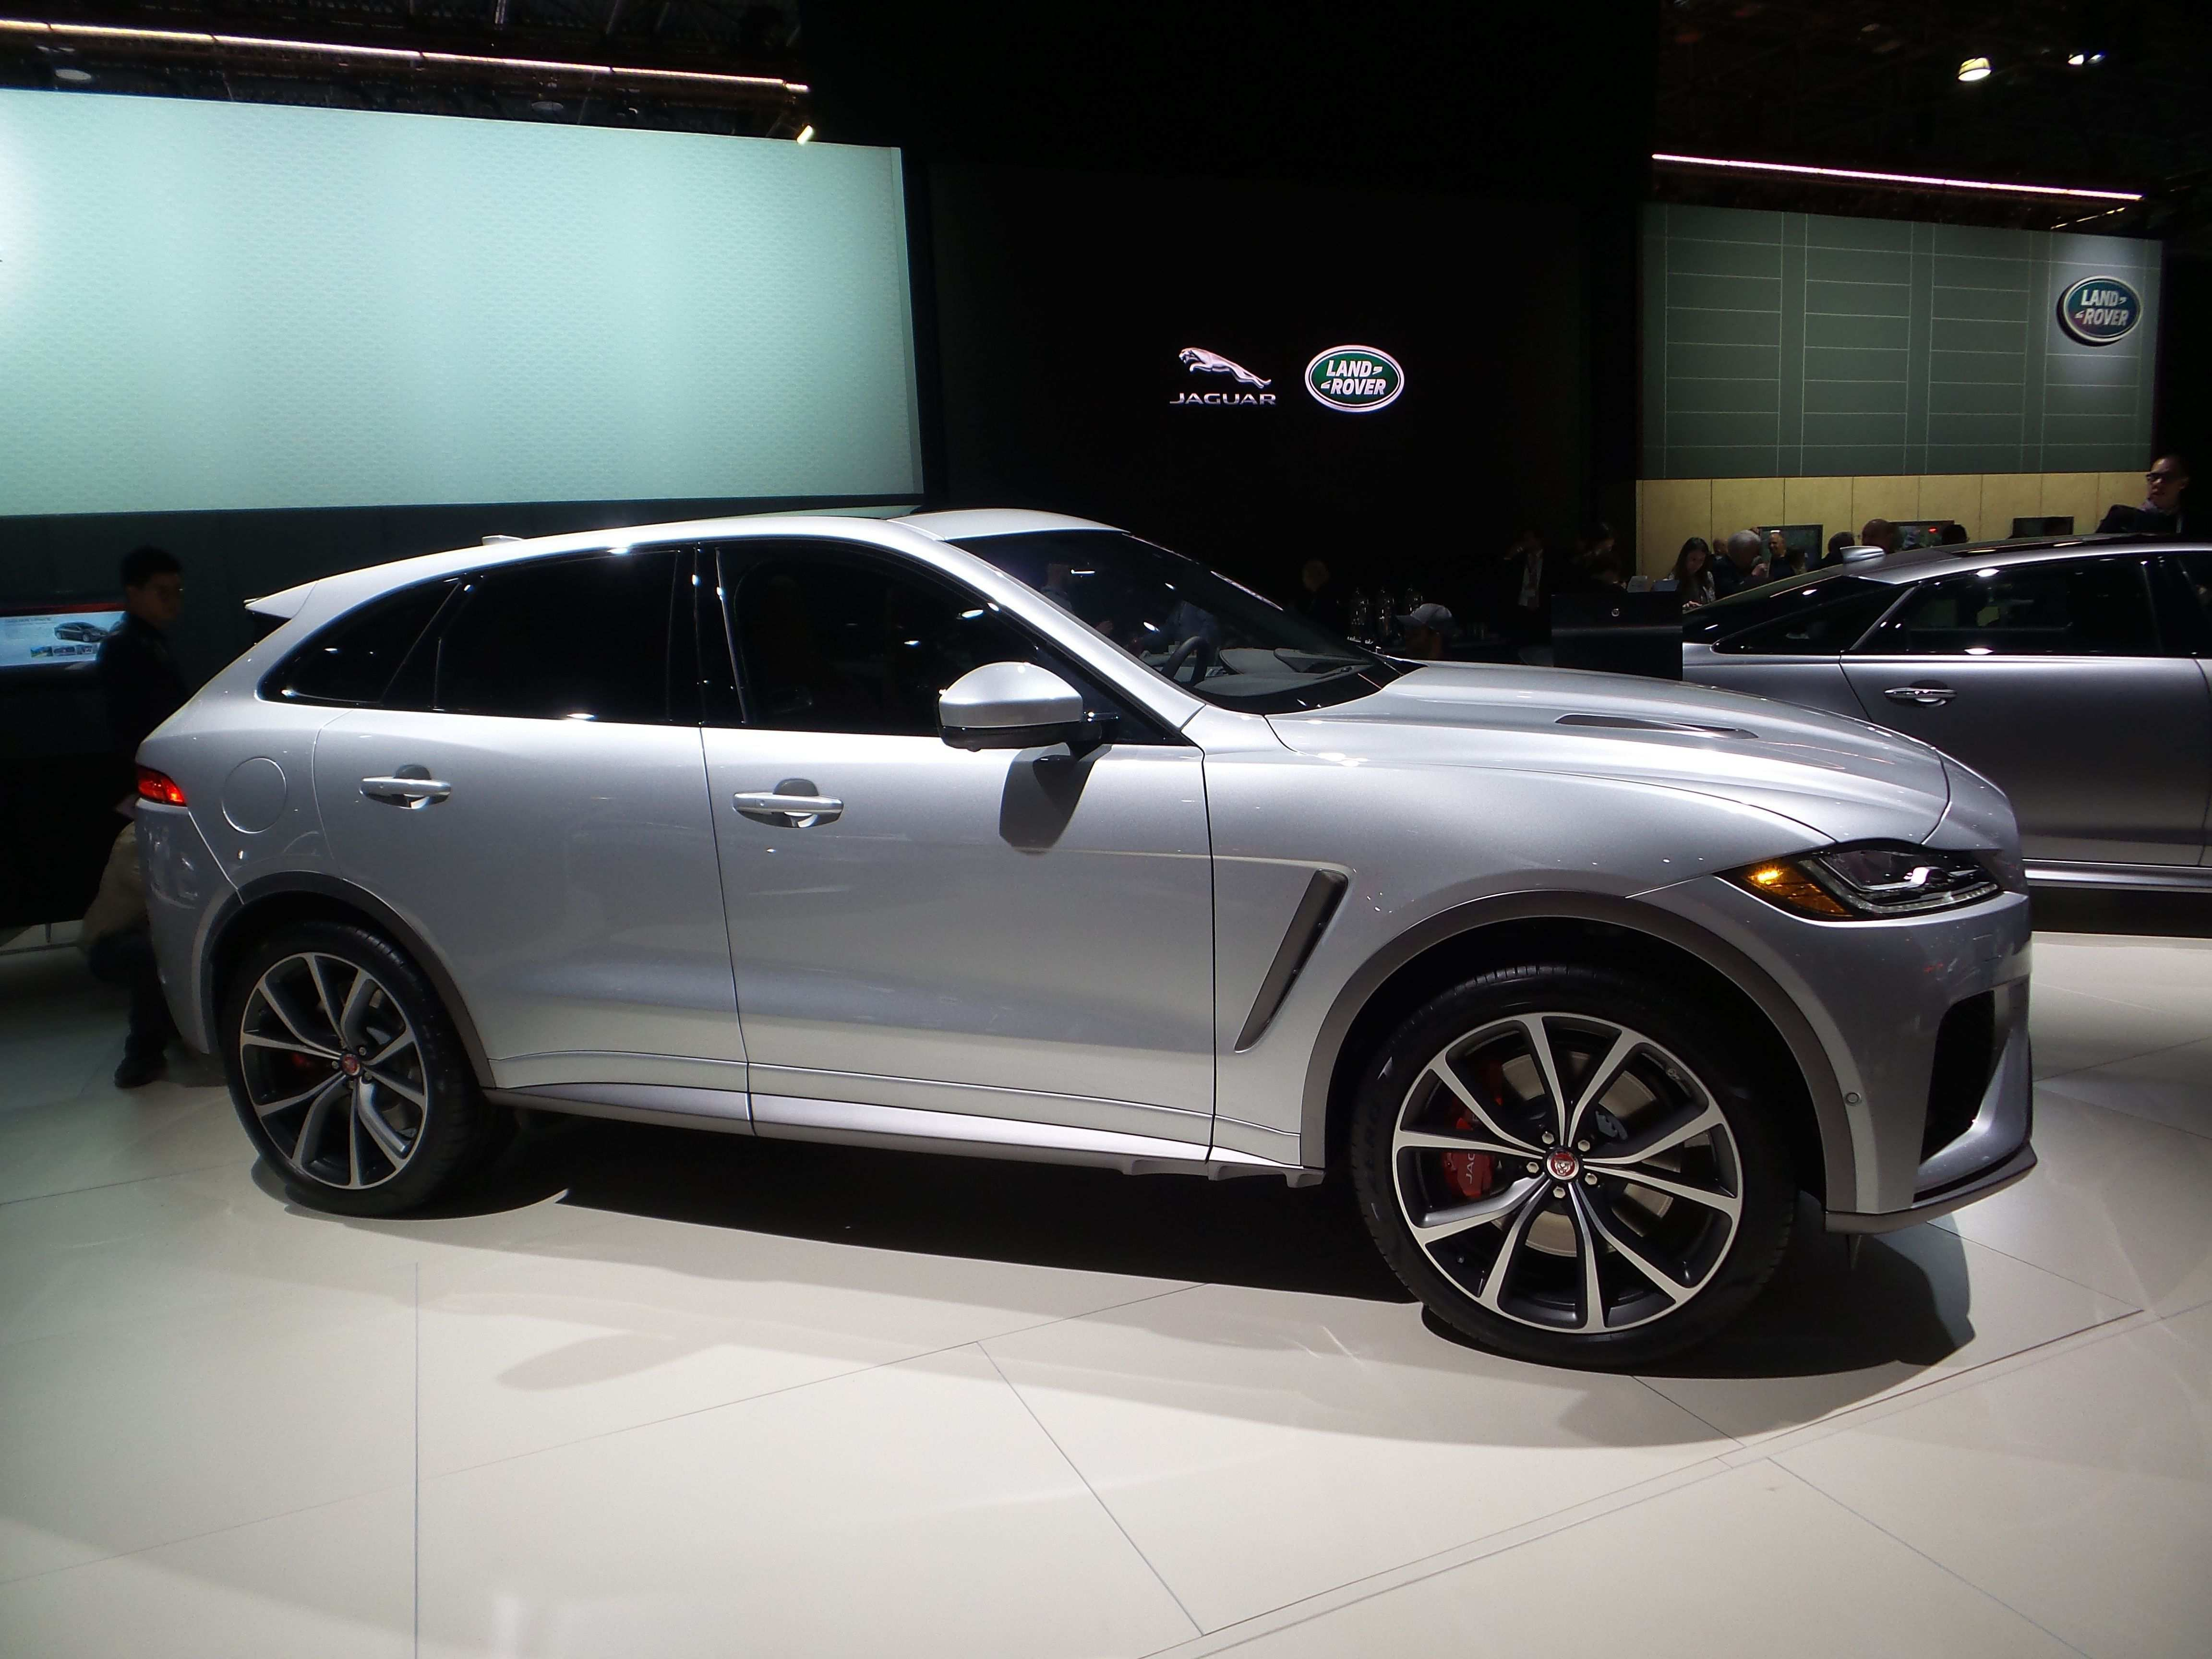 85 Concept of 2019 Jaguar F Pace Svr Price Price Spesification with 2019 Jaguar F Pace Svr Price Price